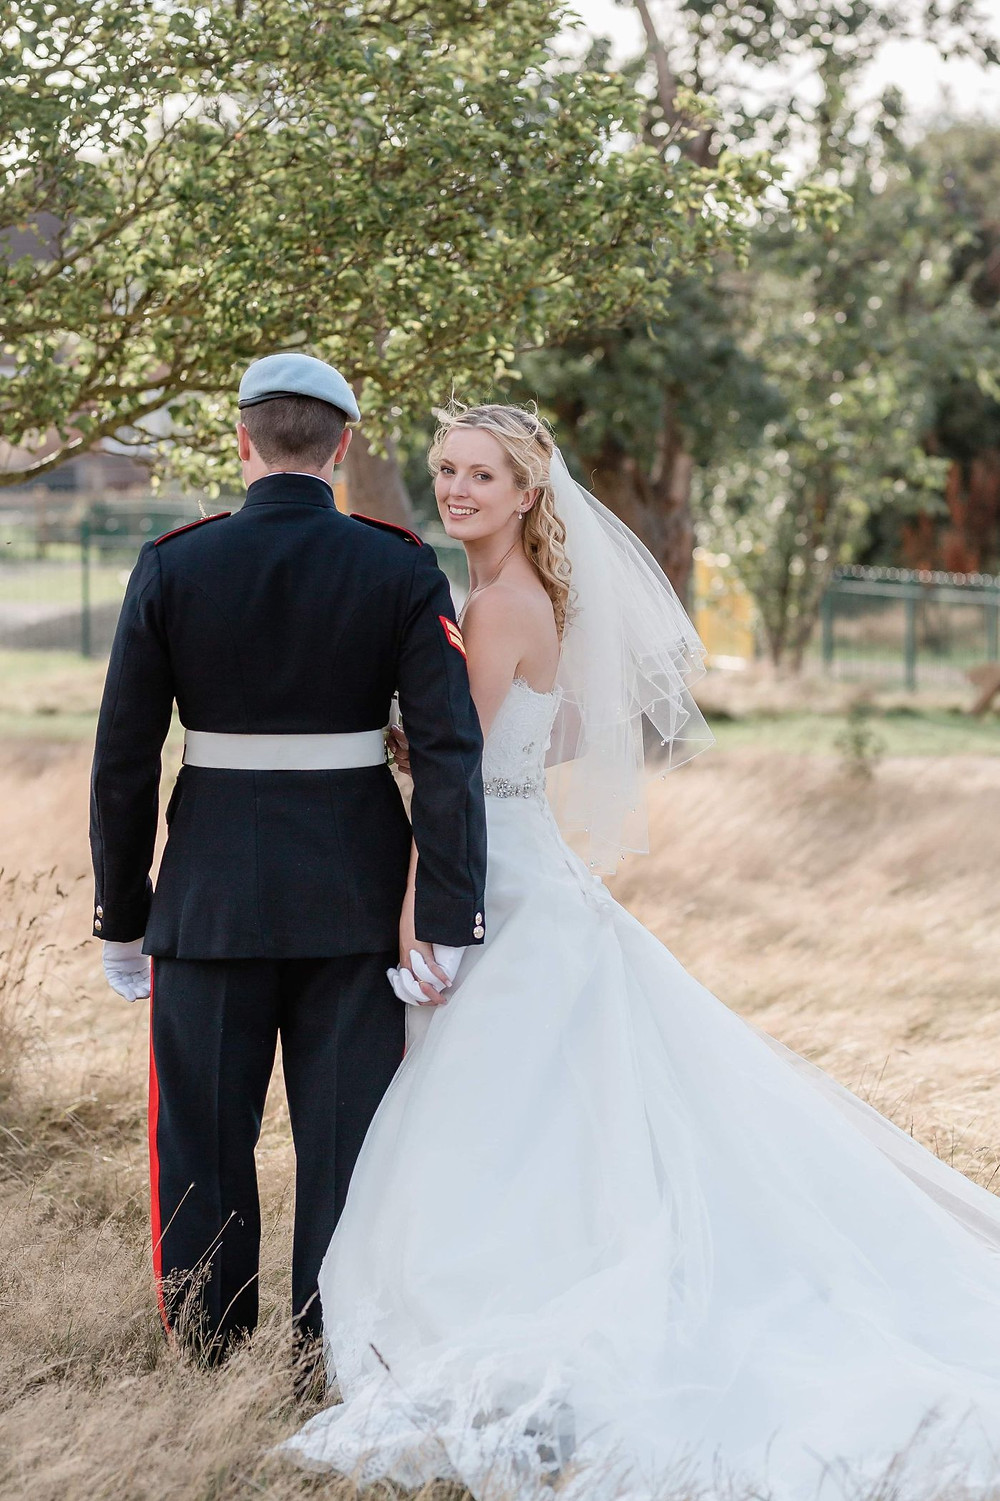 Kate Hennessy Photography | Bride looking at camera over groom's shoulder, bride and groom standing in a field, military wedding